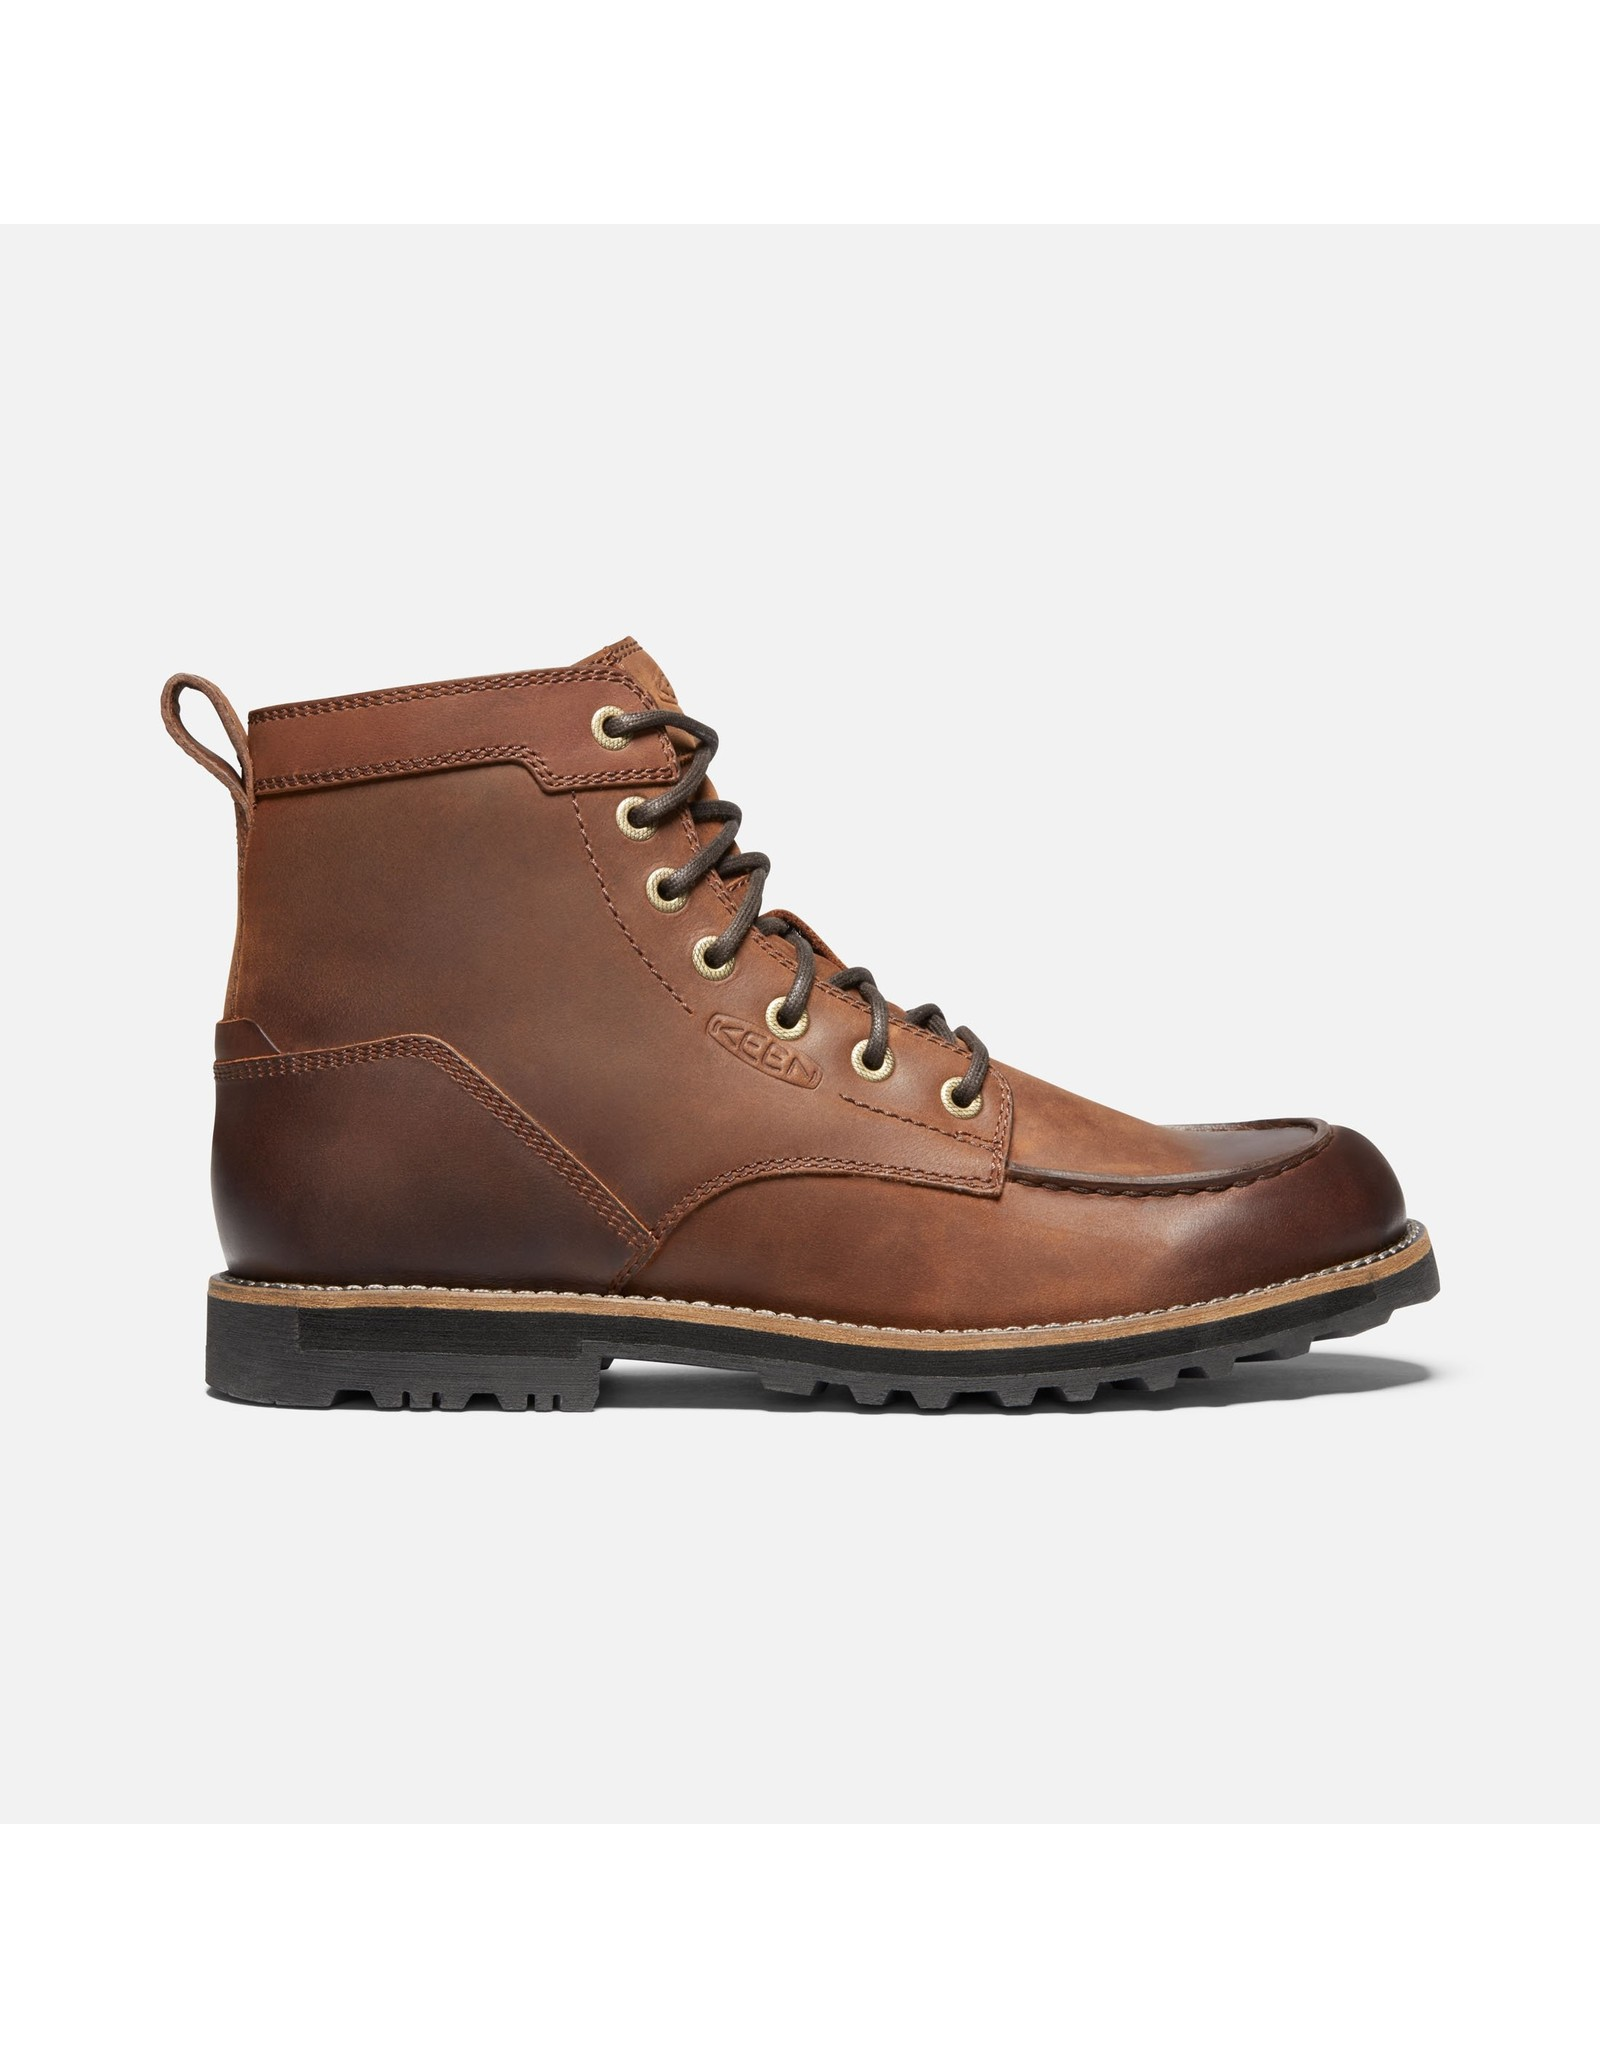 KEEN MEN'S THE 59 II MOC TOE BOOT-BROWN